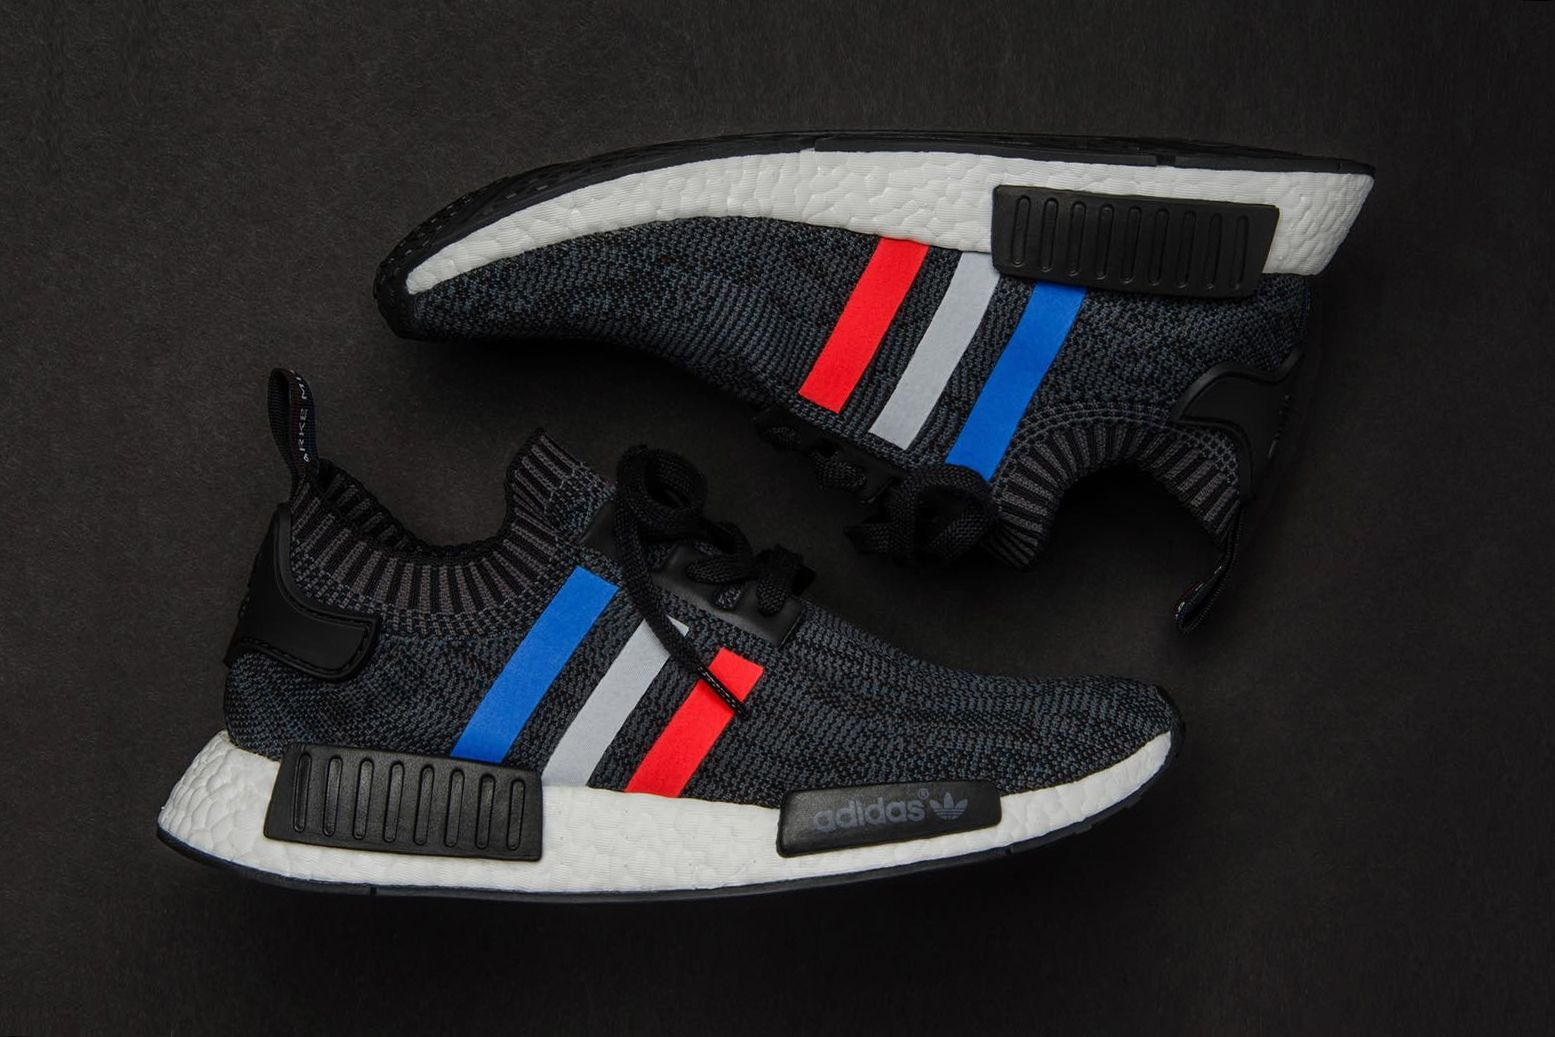 506df87fab56 Here s an In-Depth Look at the adidas Originals NMD R1